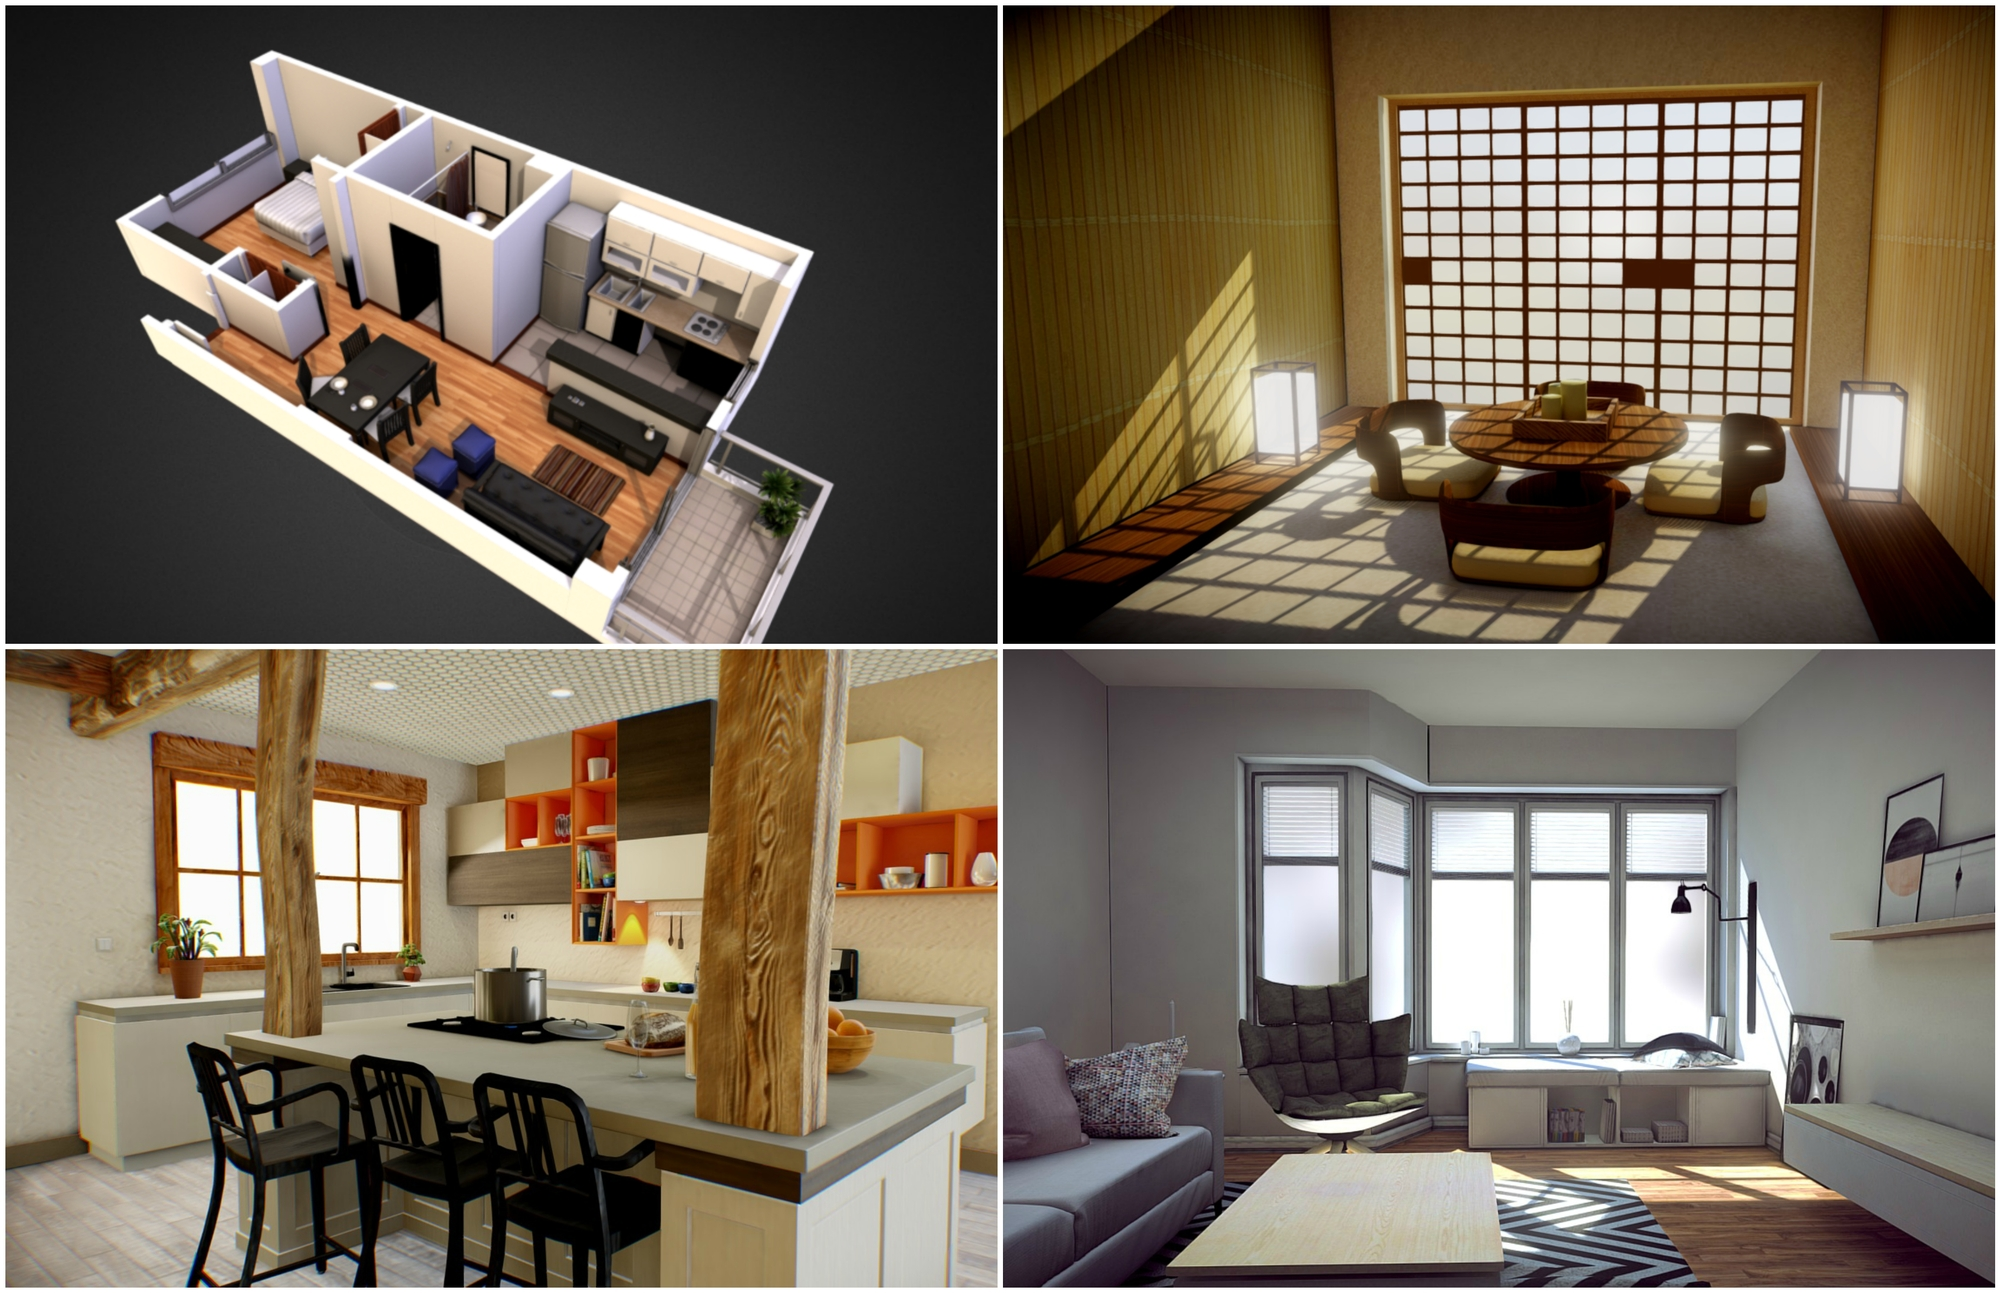 7 examples of how to show off interiors in your 3d models for Model agency apartments